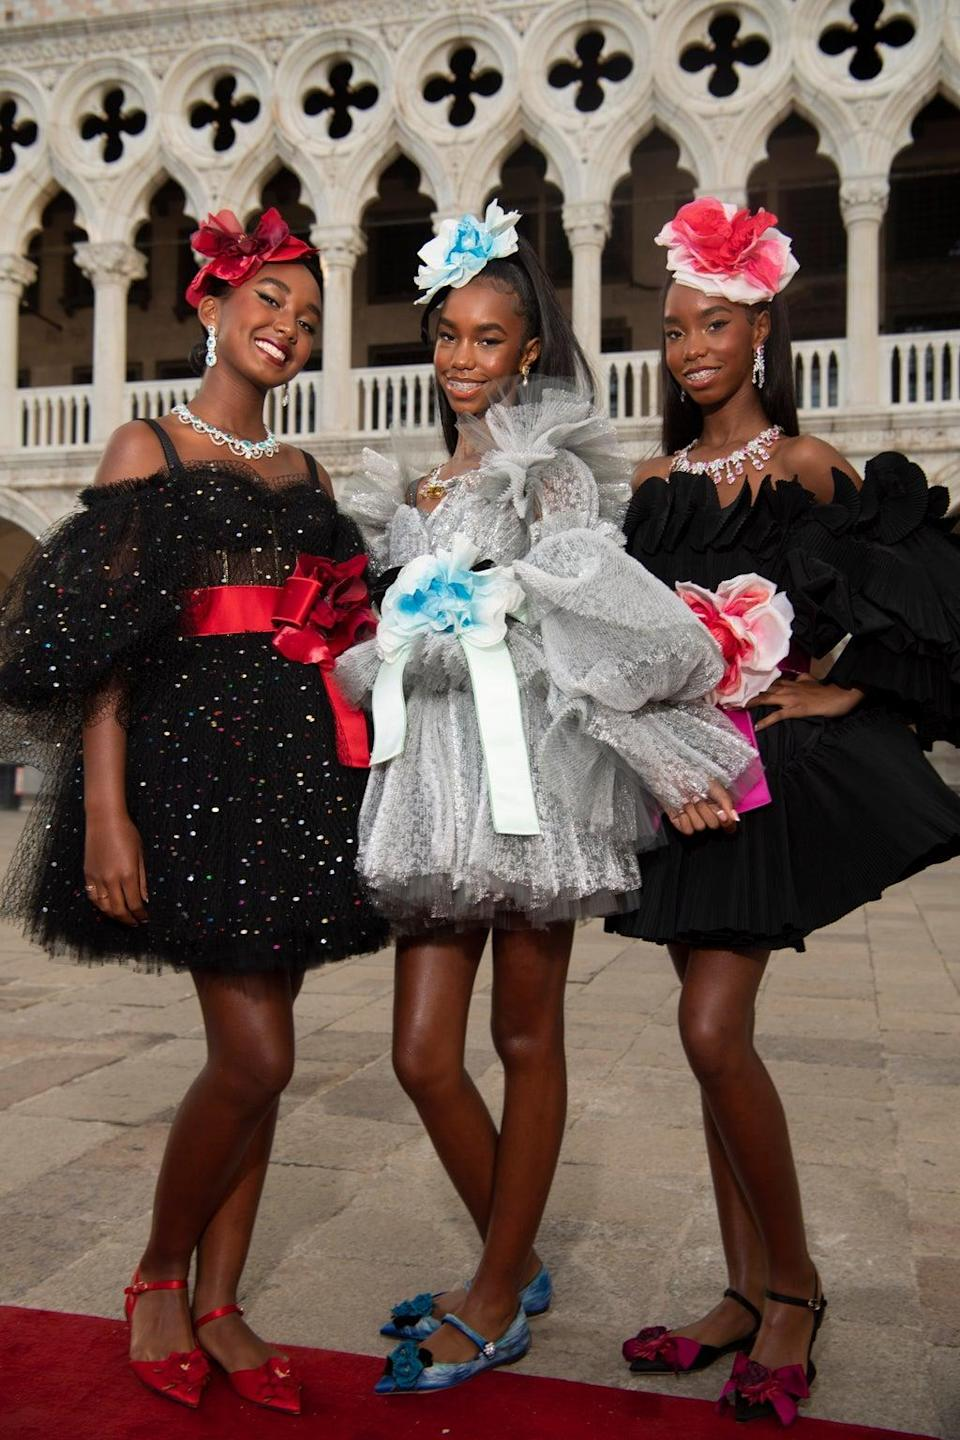 Chance, D'Lila Star and Jessie James Combs, daughters of Sean Combs took their turn on the catwalk (Dolce & Gabanna)